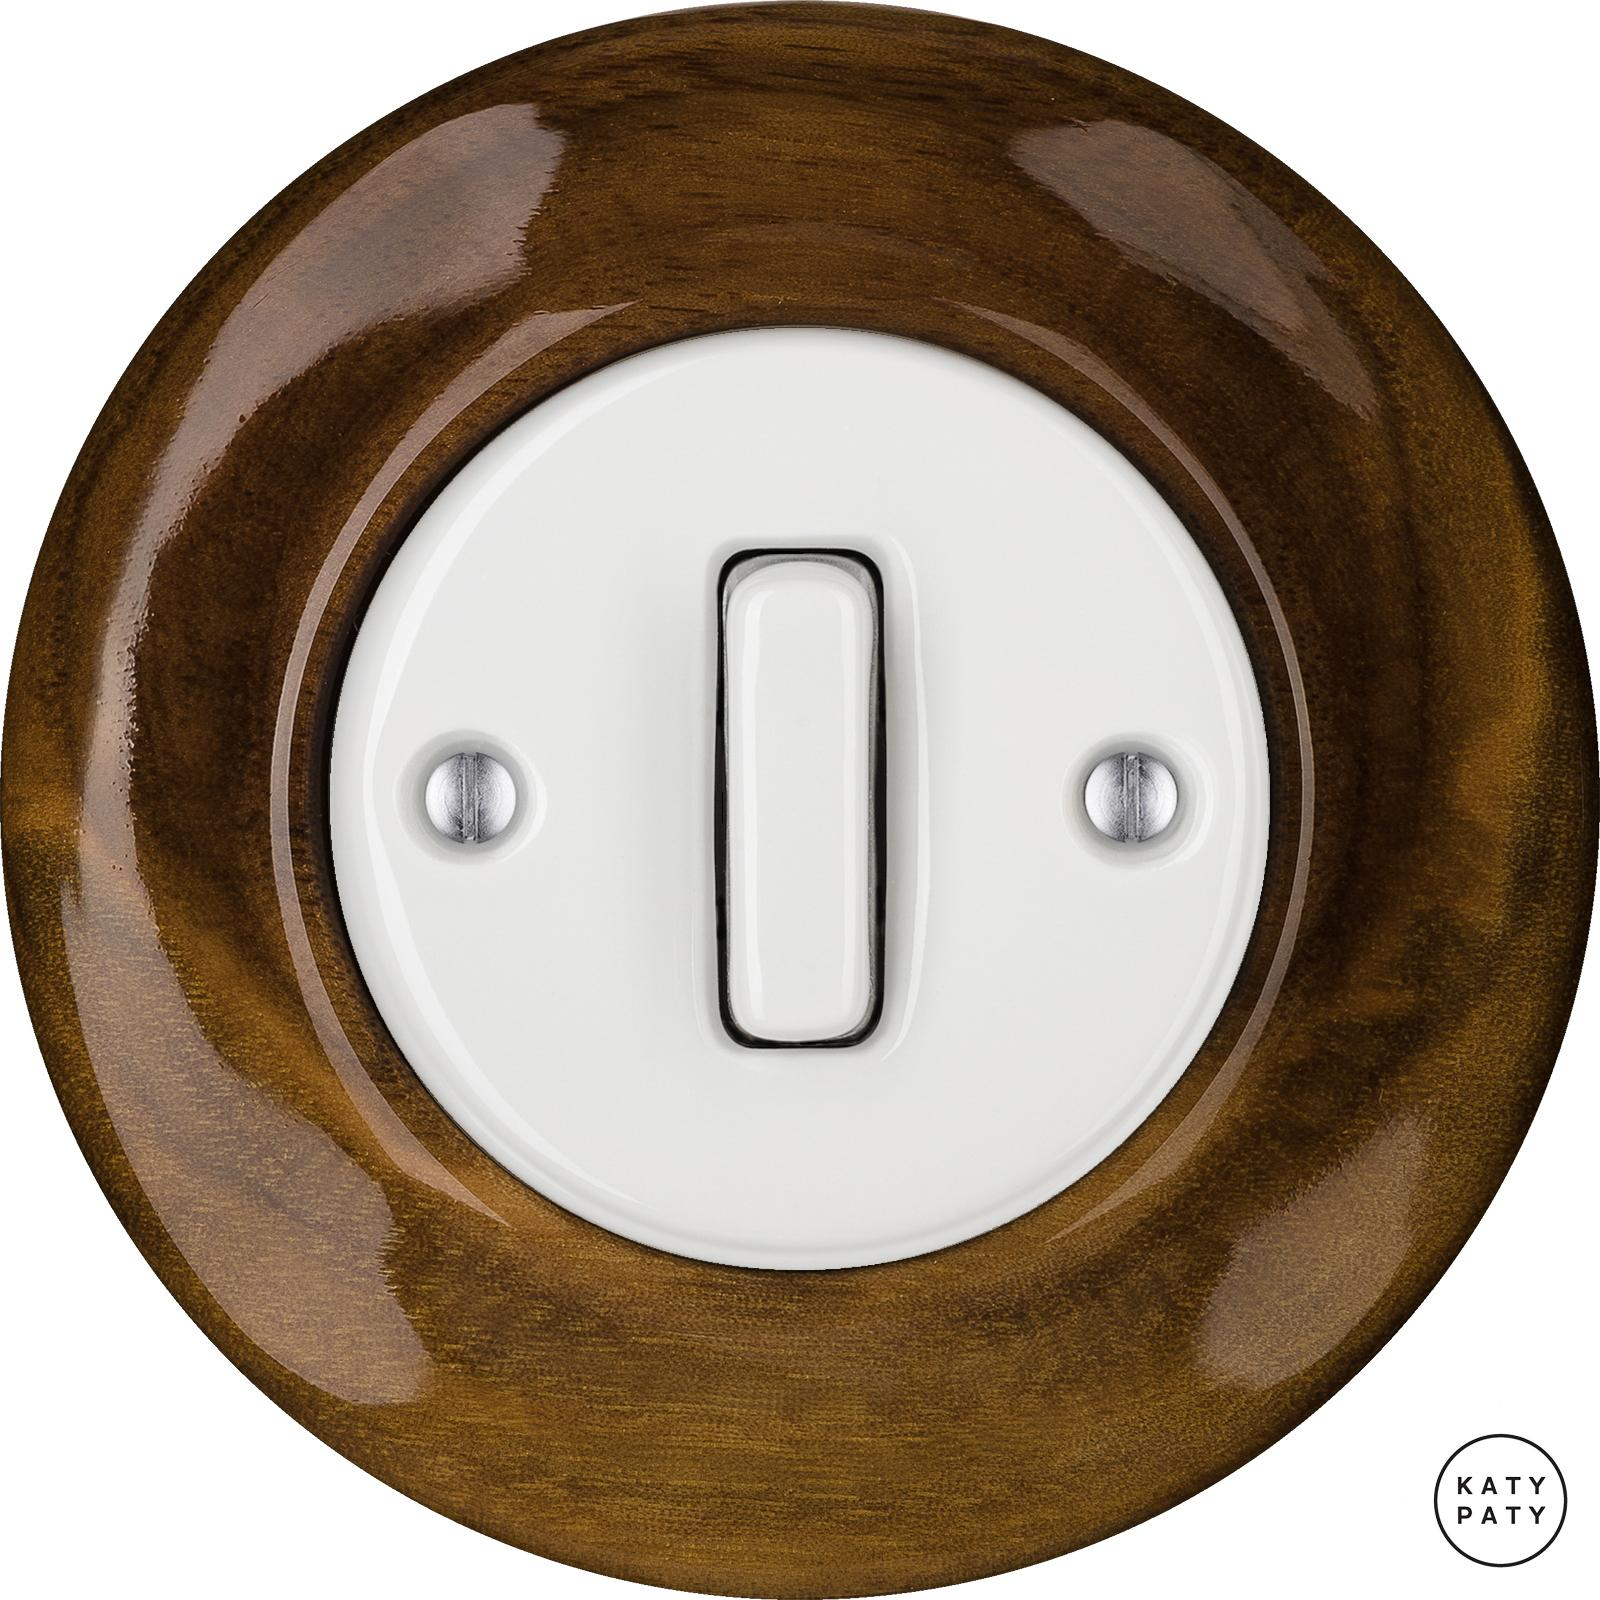 Porcelain switches - 1 gang - SLIM ()  - NUC MAG | Katy Paty